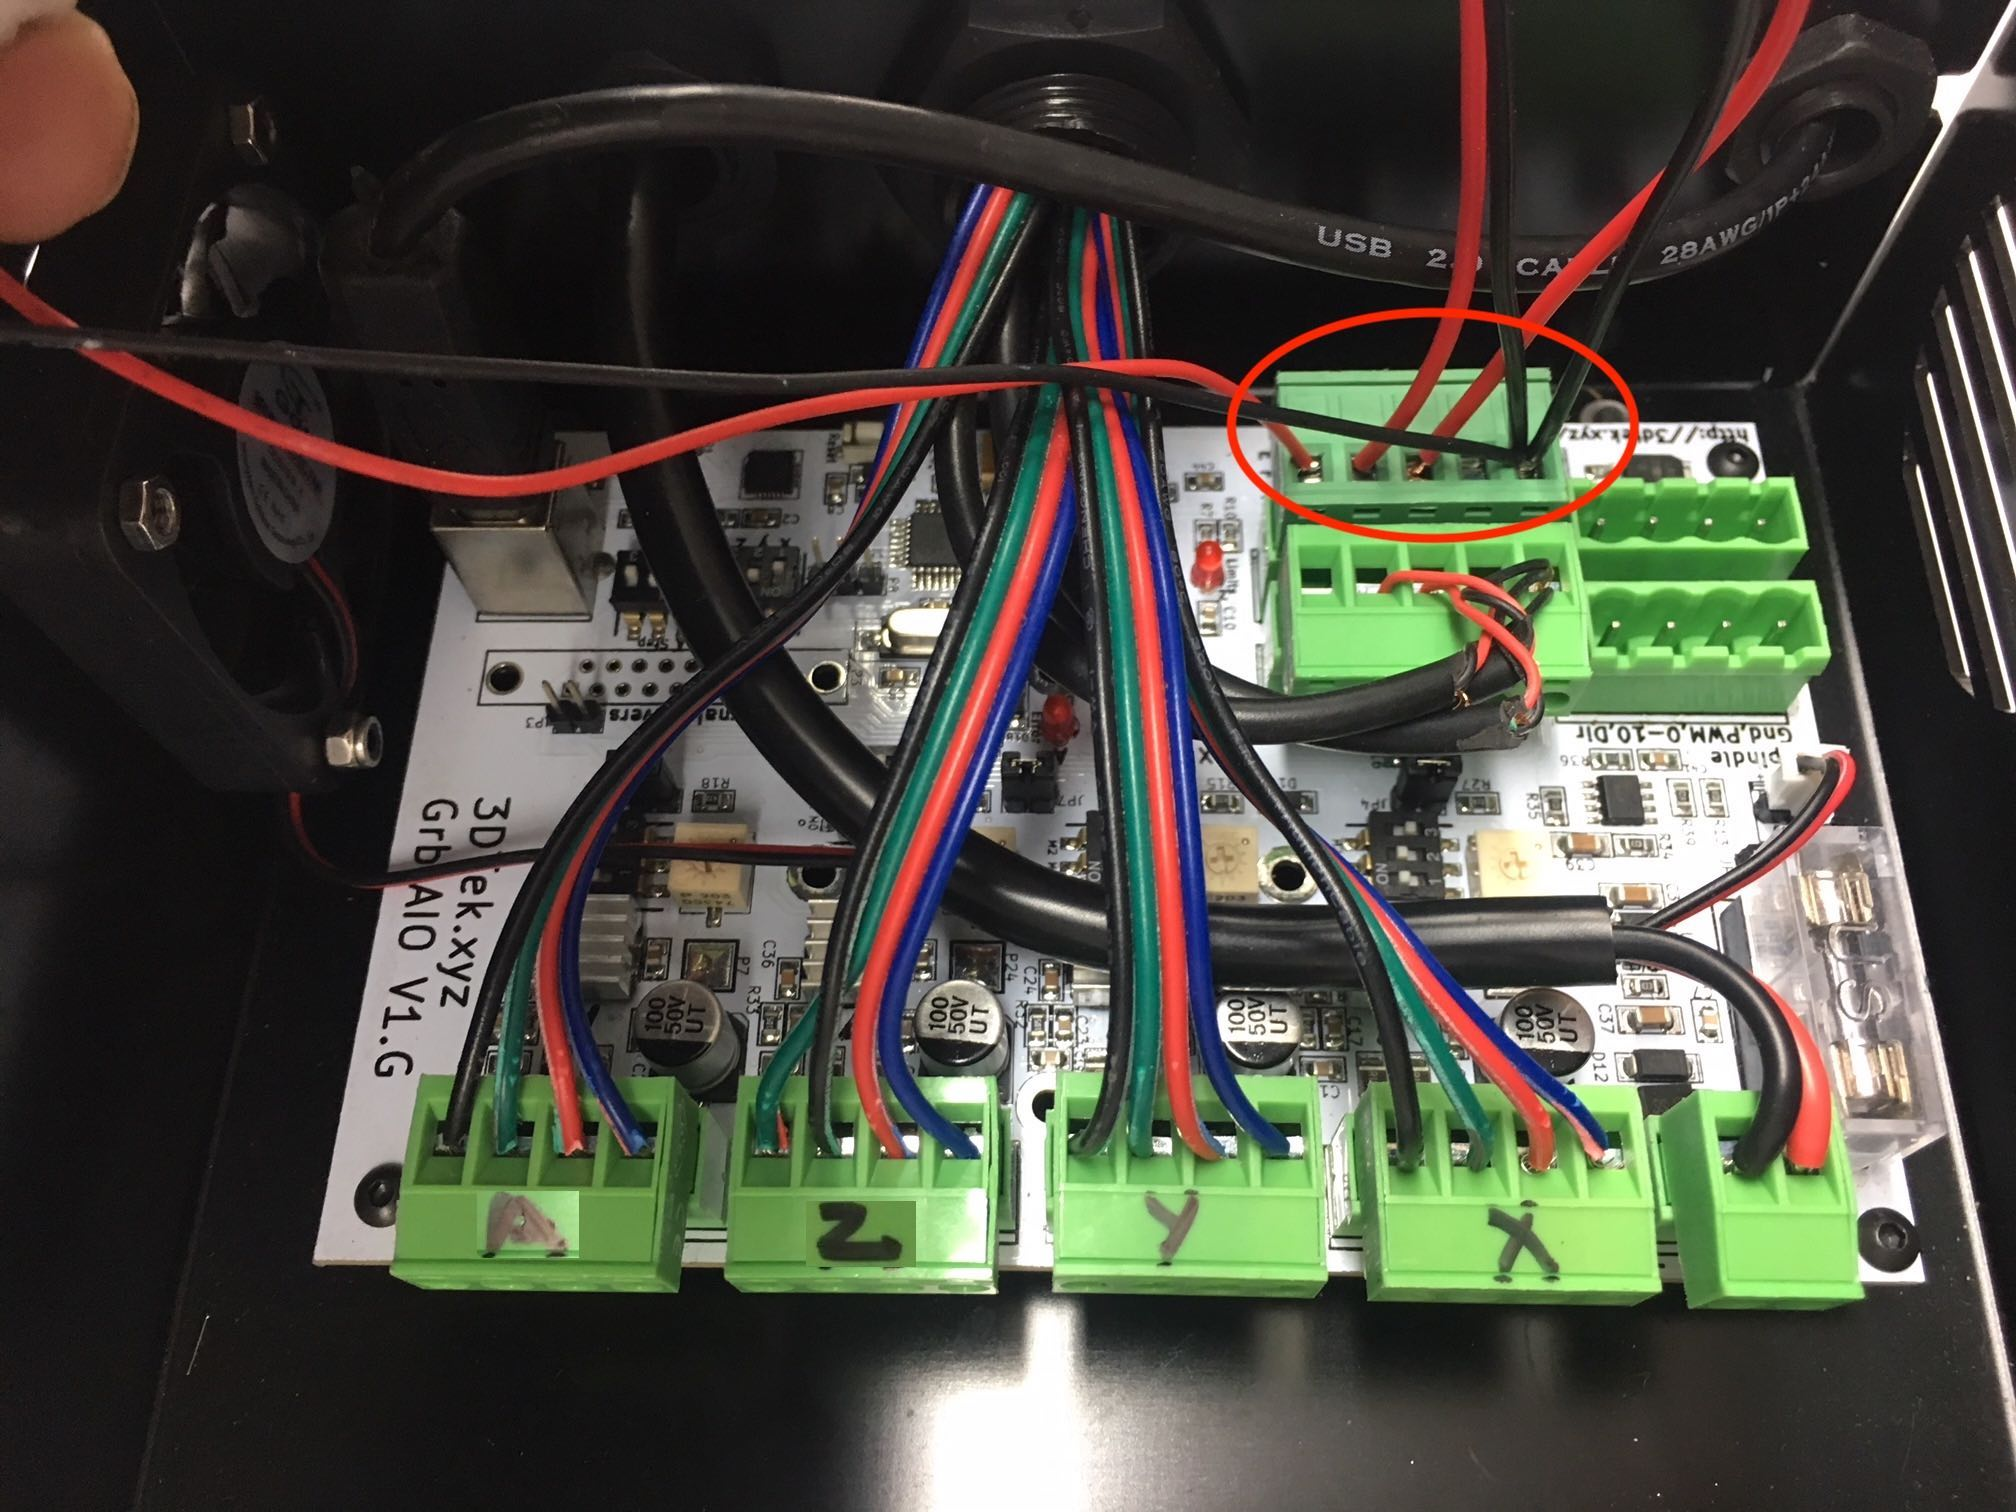 Wiring Connections Tuning And Driver Install 3dtek Xyz Carve Front Panel Click